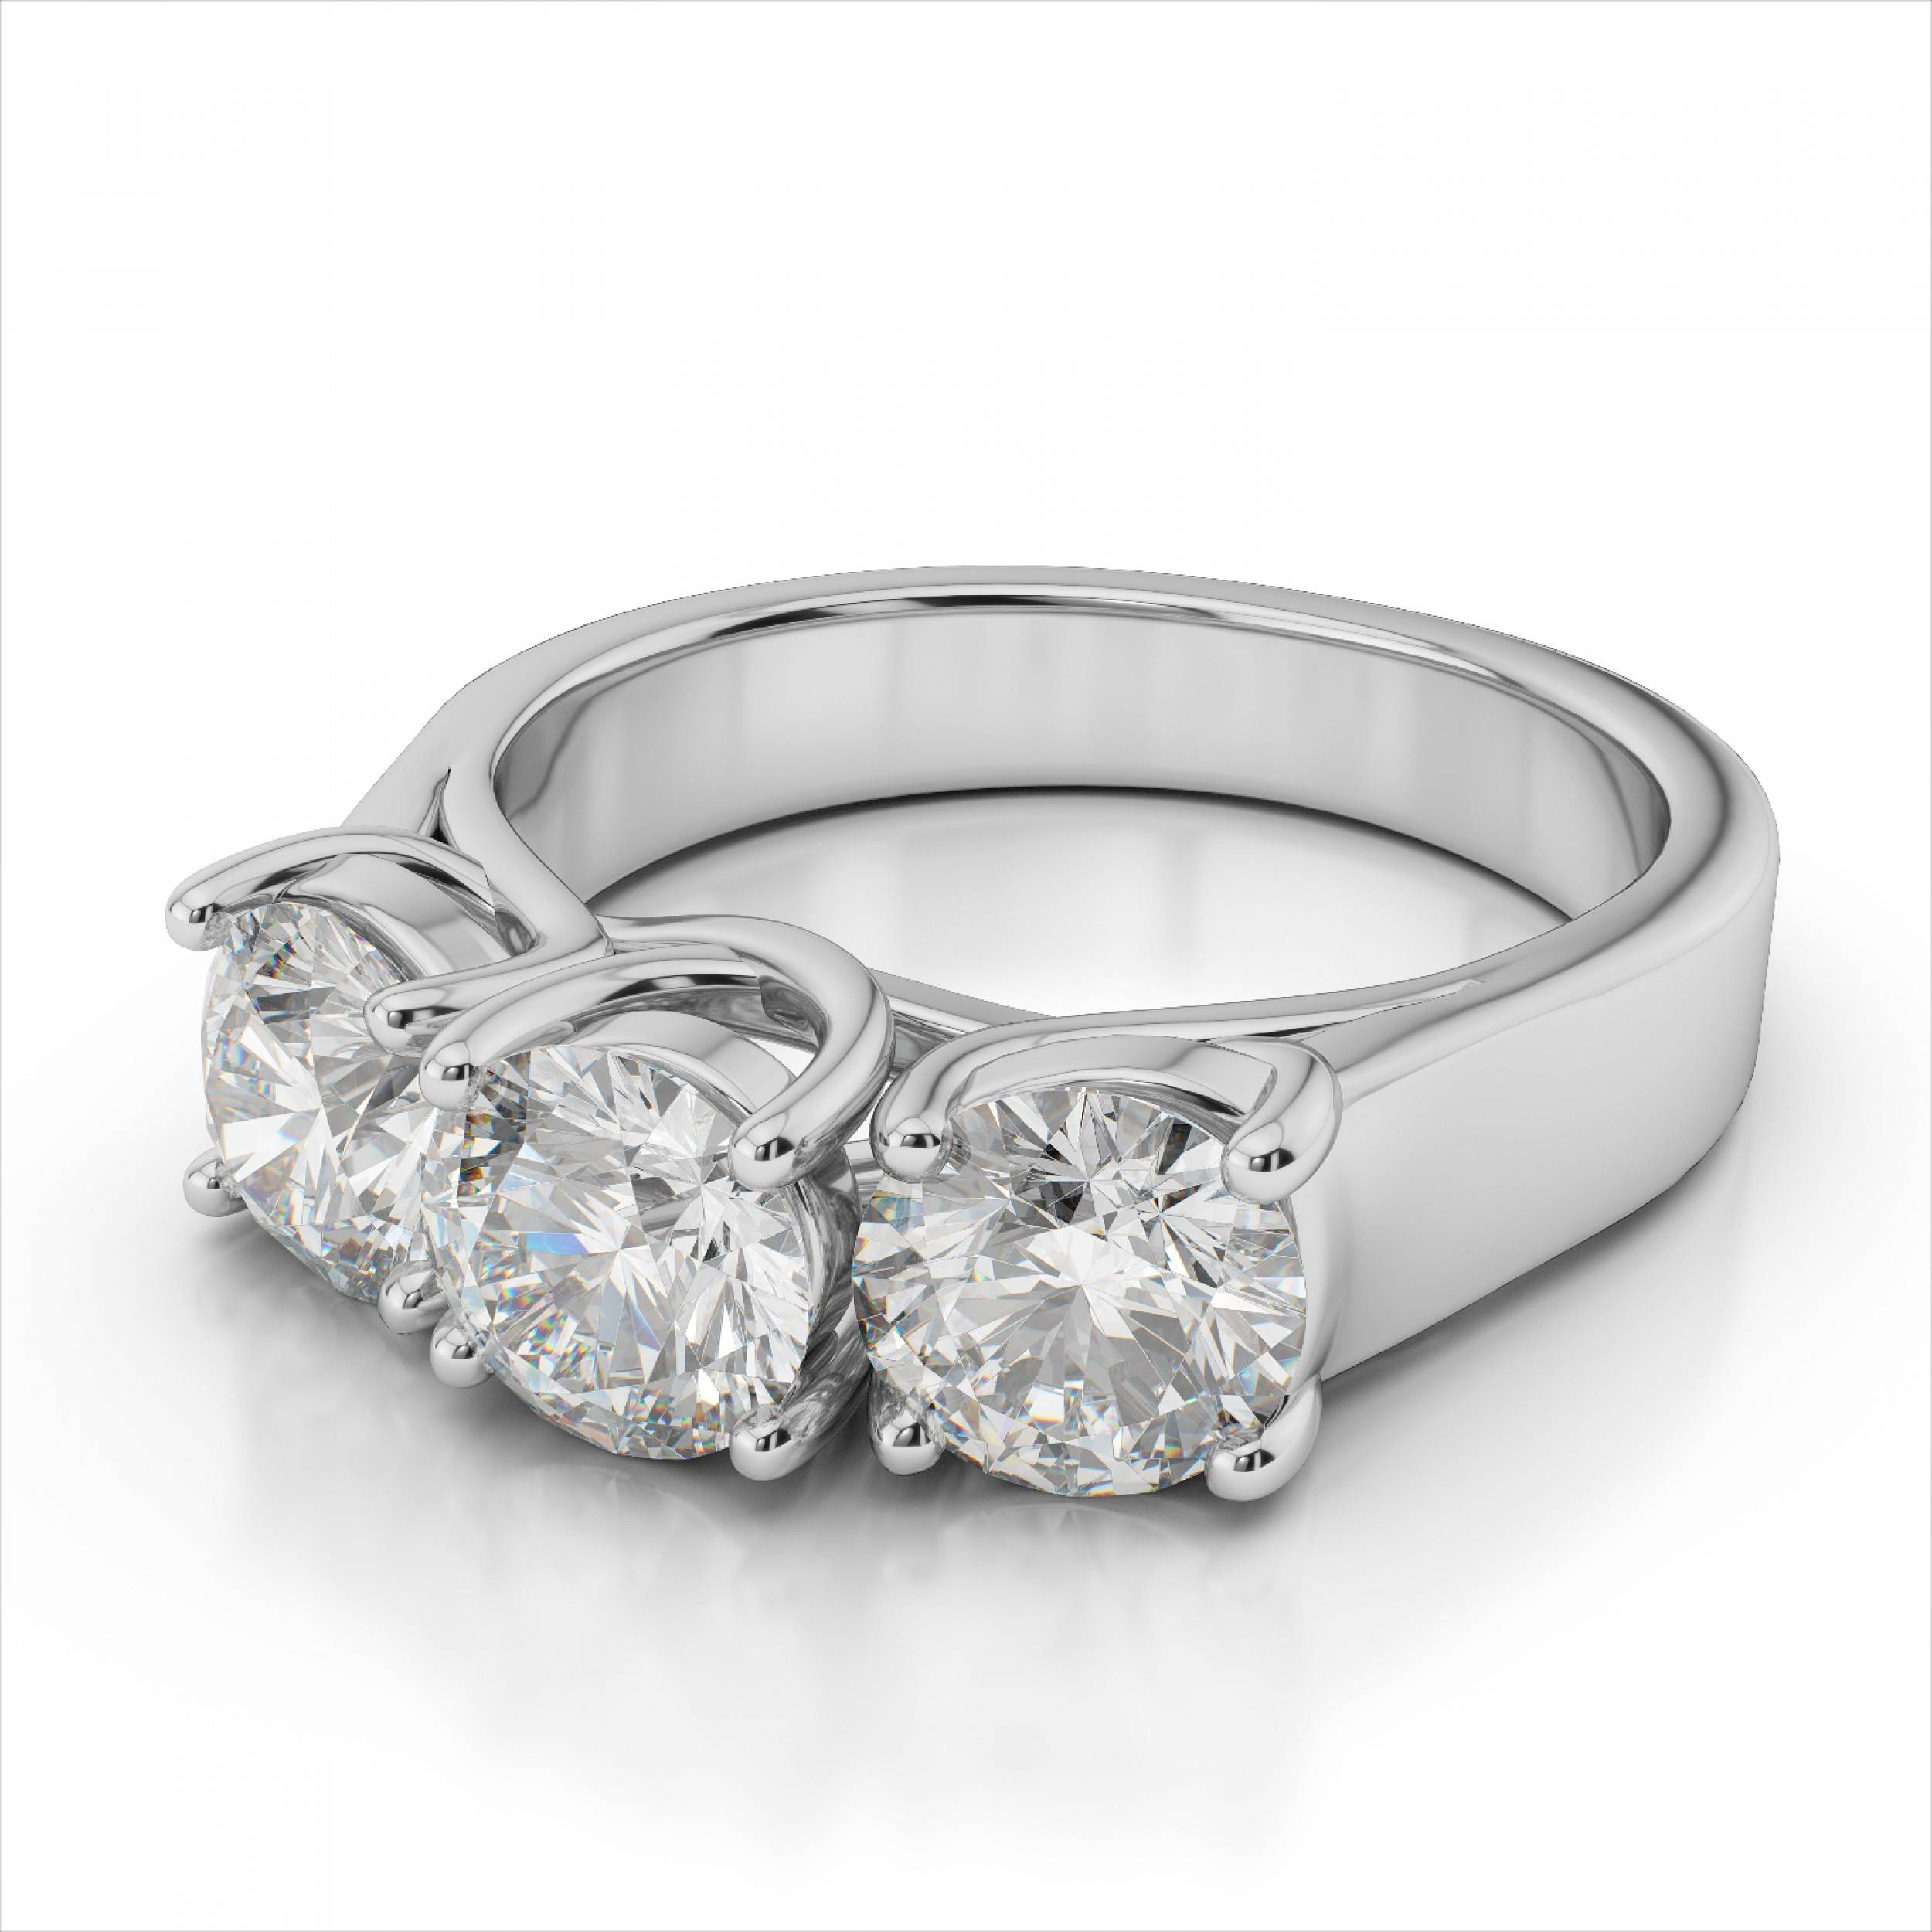 Wedding Rings : 3 Stone Engagement Rings With Side Stones 3 Stone Regarding Engagement Rings With Side Diamonds (View 15 of 15)